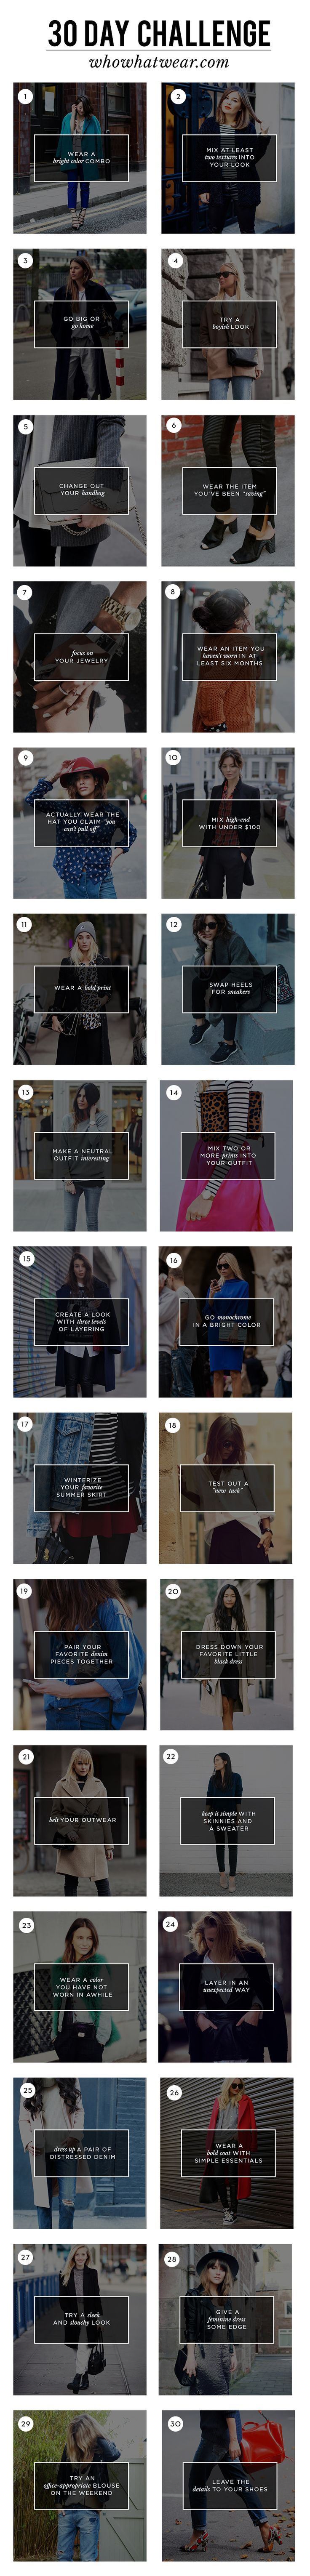 Who What Wear's 30-Day Wardrobe Challenge: A different daily style challenge to change the way you look at your wardrobe and invigorate your dressing over the next 30 days. // #WWWStyleChallenge